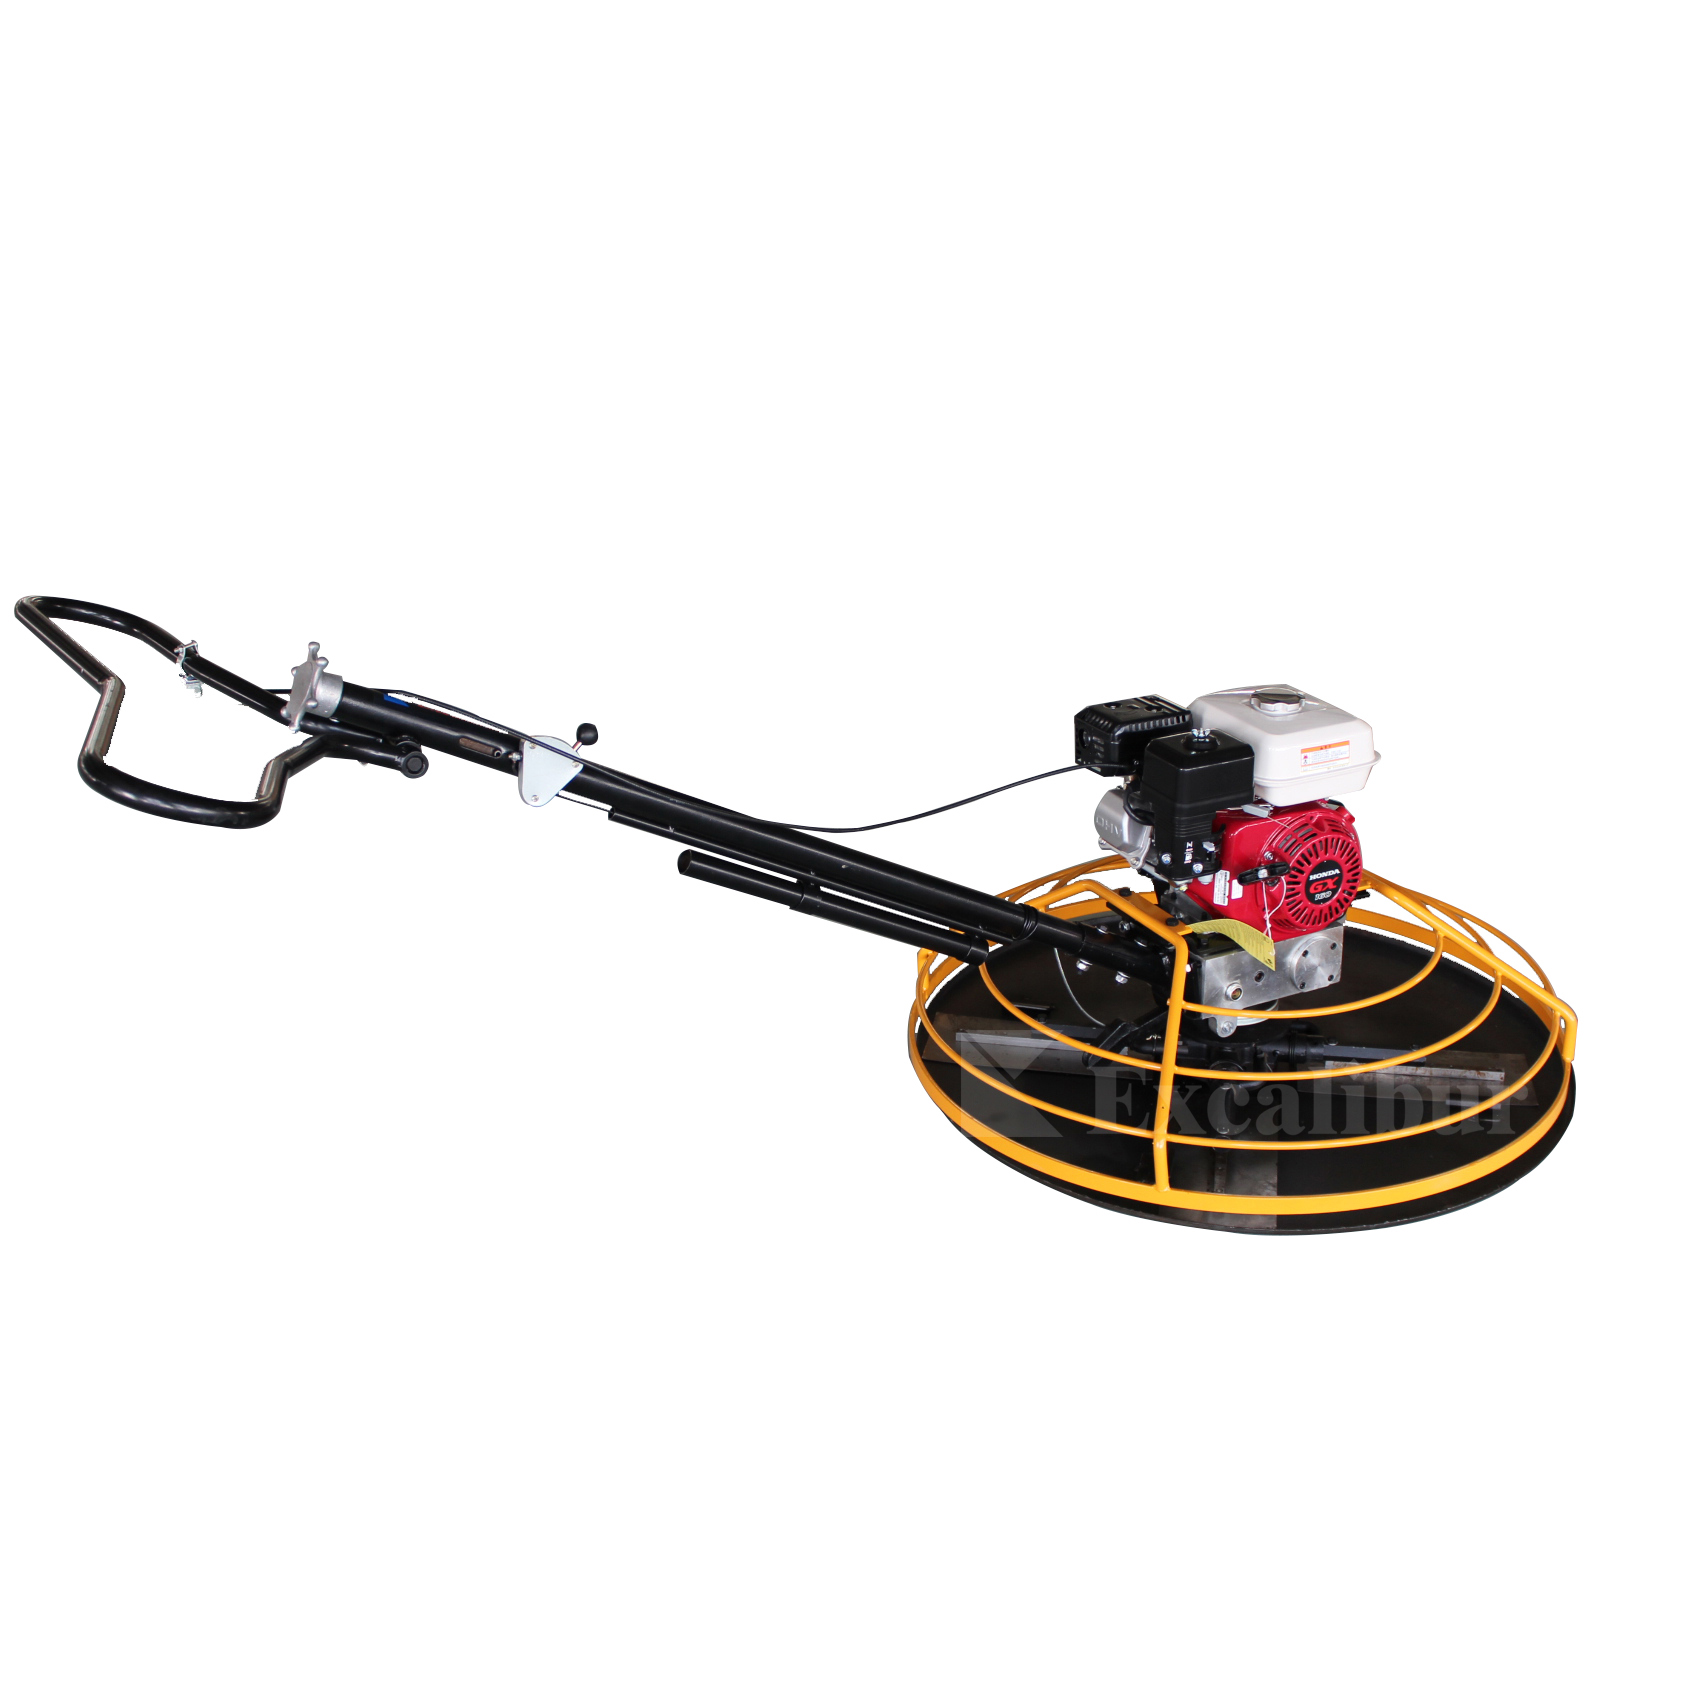 Excalibur Gasoline Concrete Power Trowel ST100 Featured Image